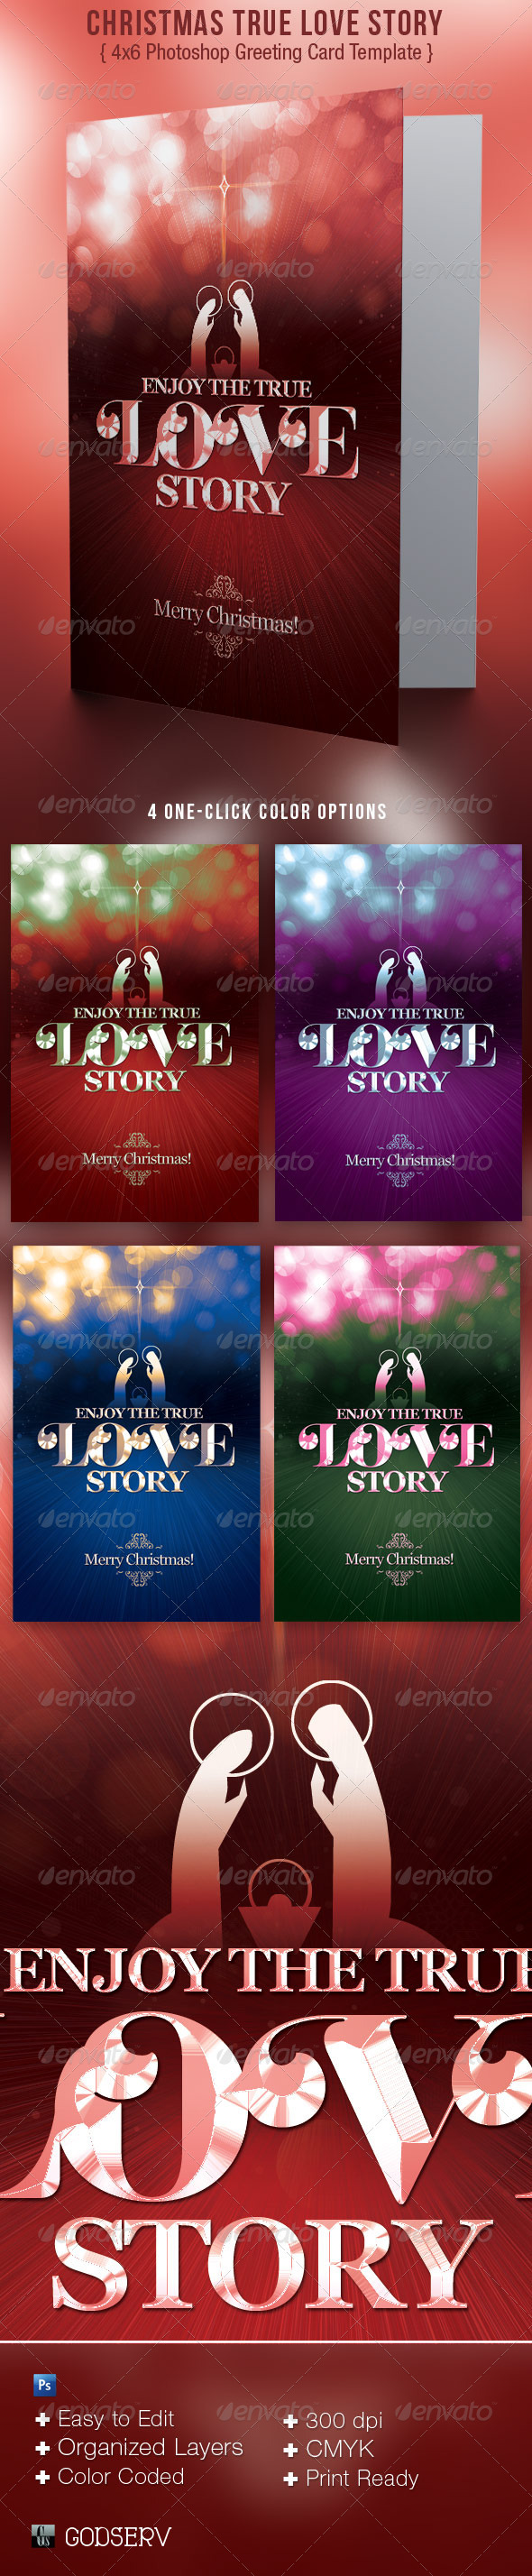 Christmas True Love Story Greeting Card Template - Holiday Greeting Cards